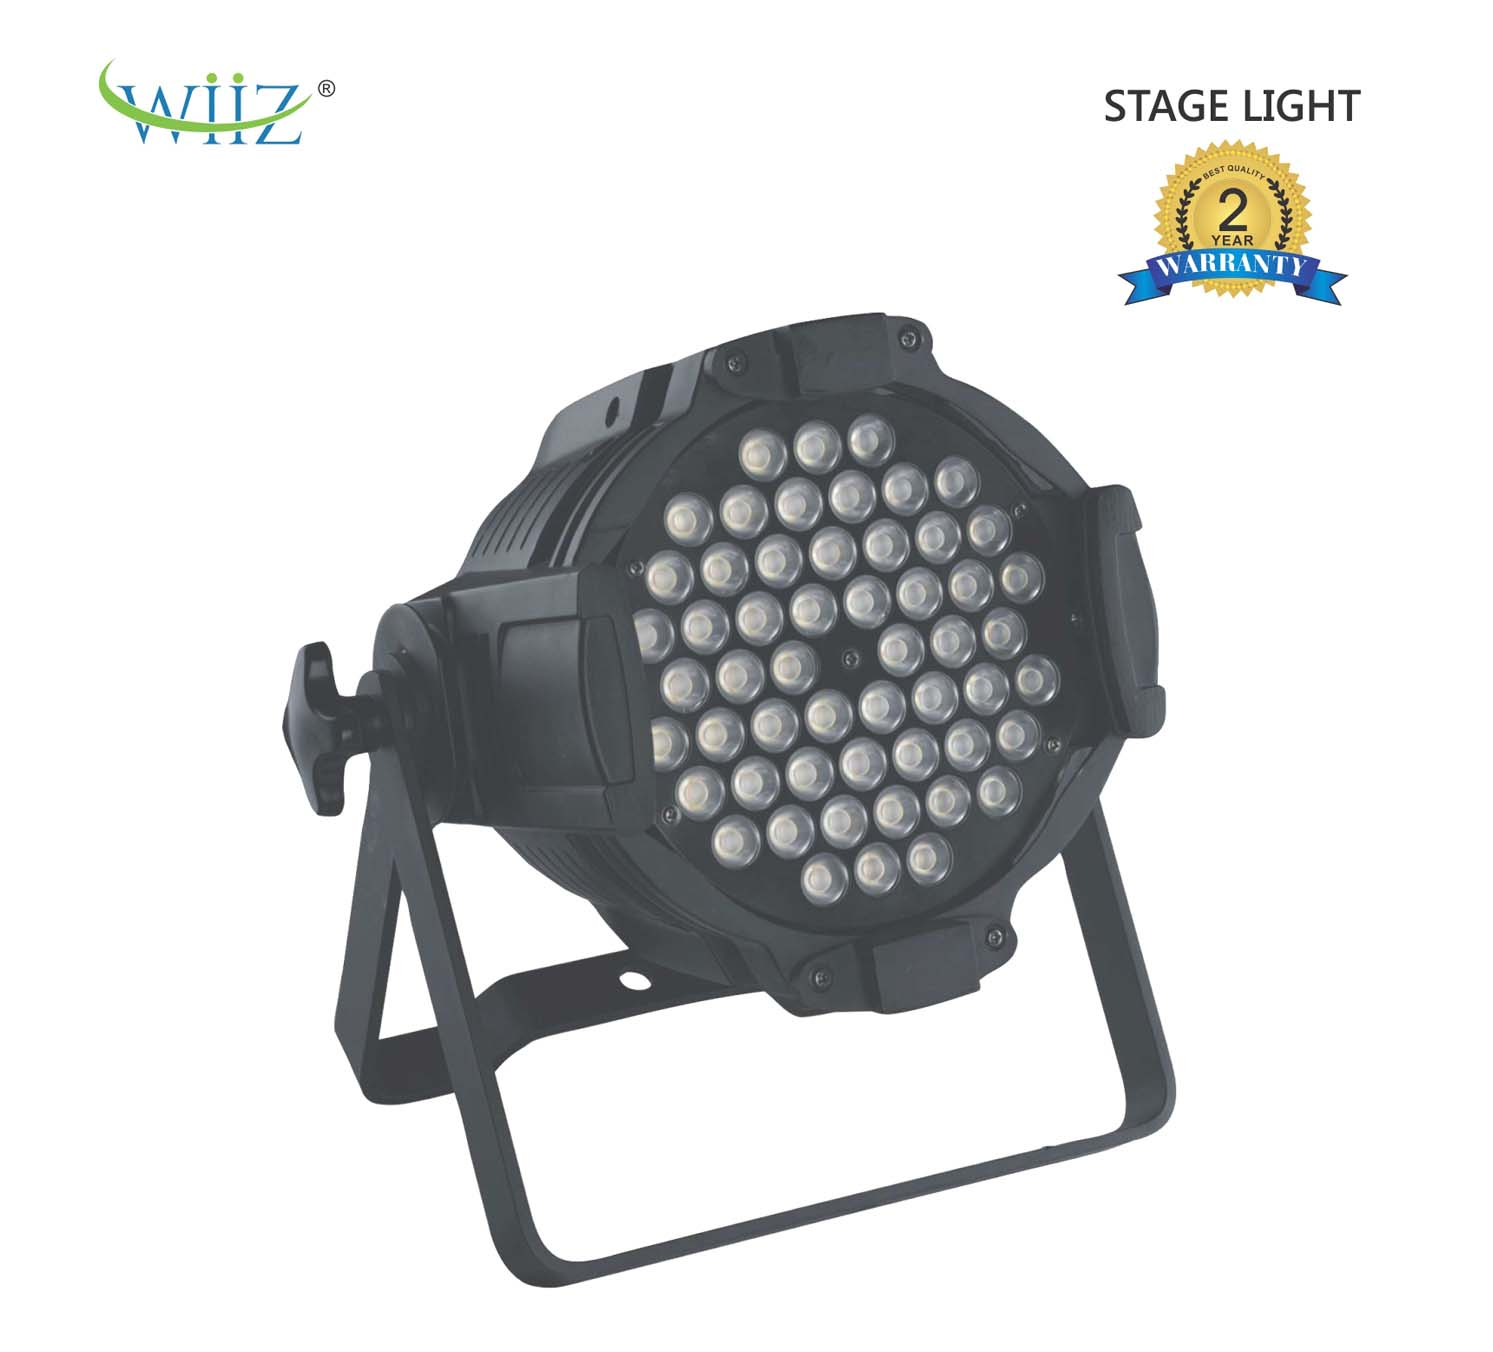 Wiiz Excelcia162 RGB Stage Light